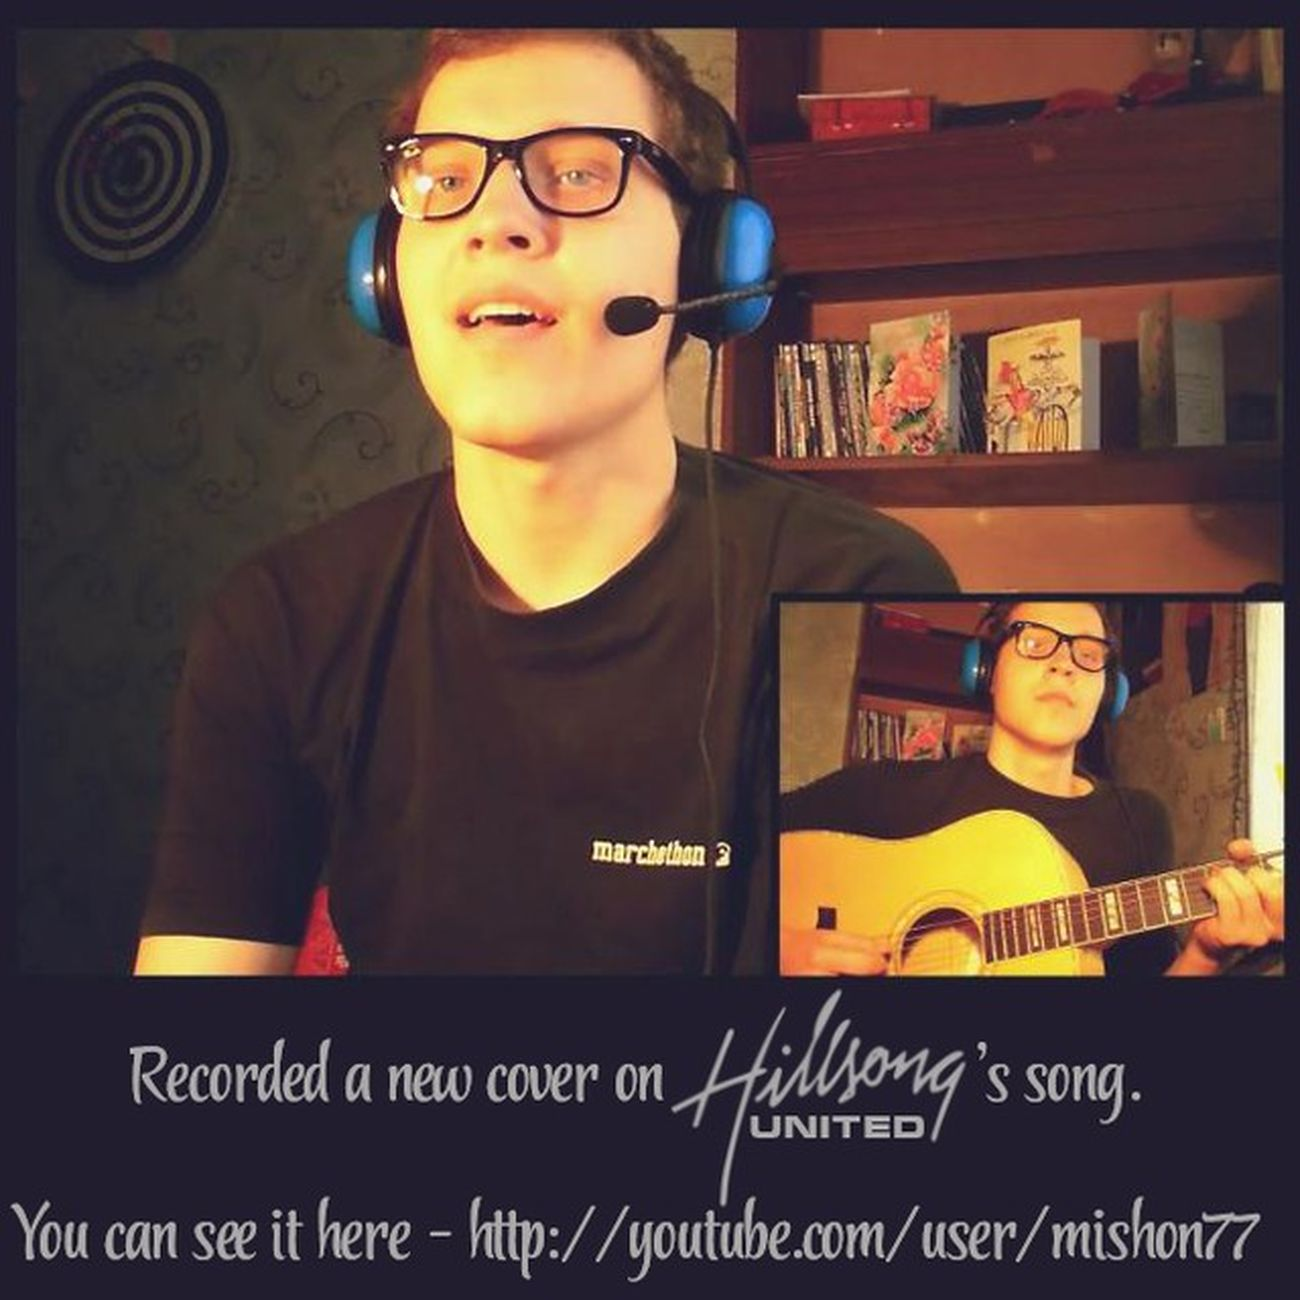 Recorded a New Cover on HillsongUnited 's song. YouCanSeeIt here - https://www.youtube.com/watch?v=yTYKvgMAmow